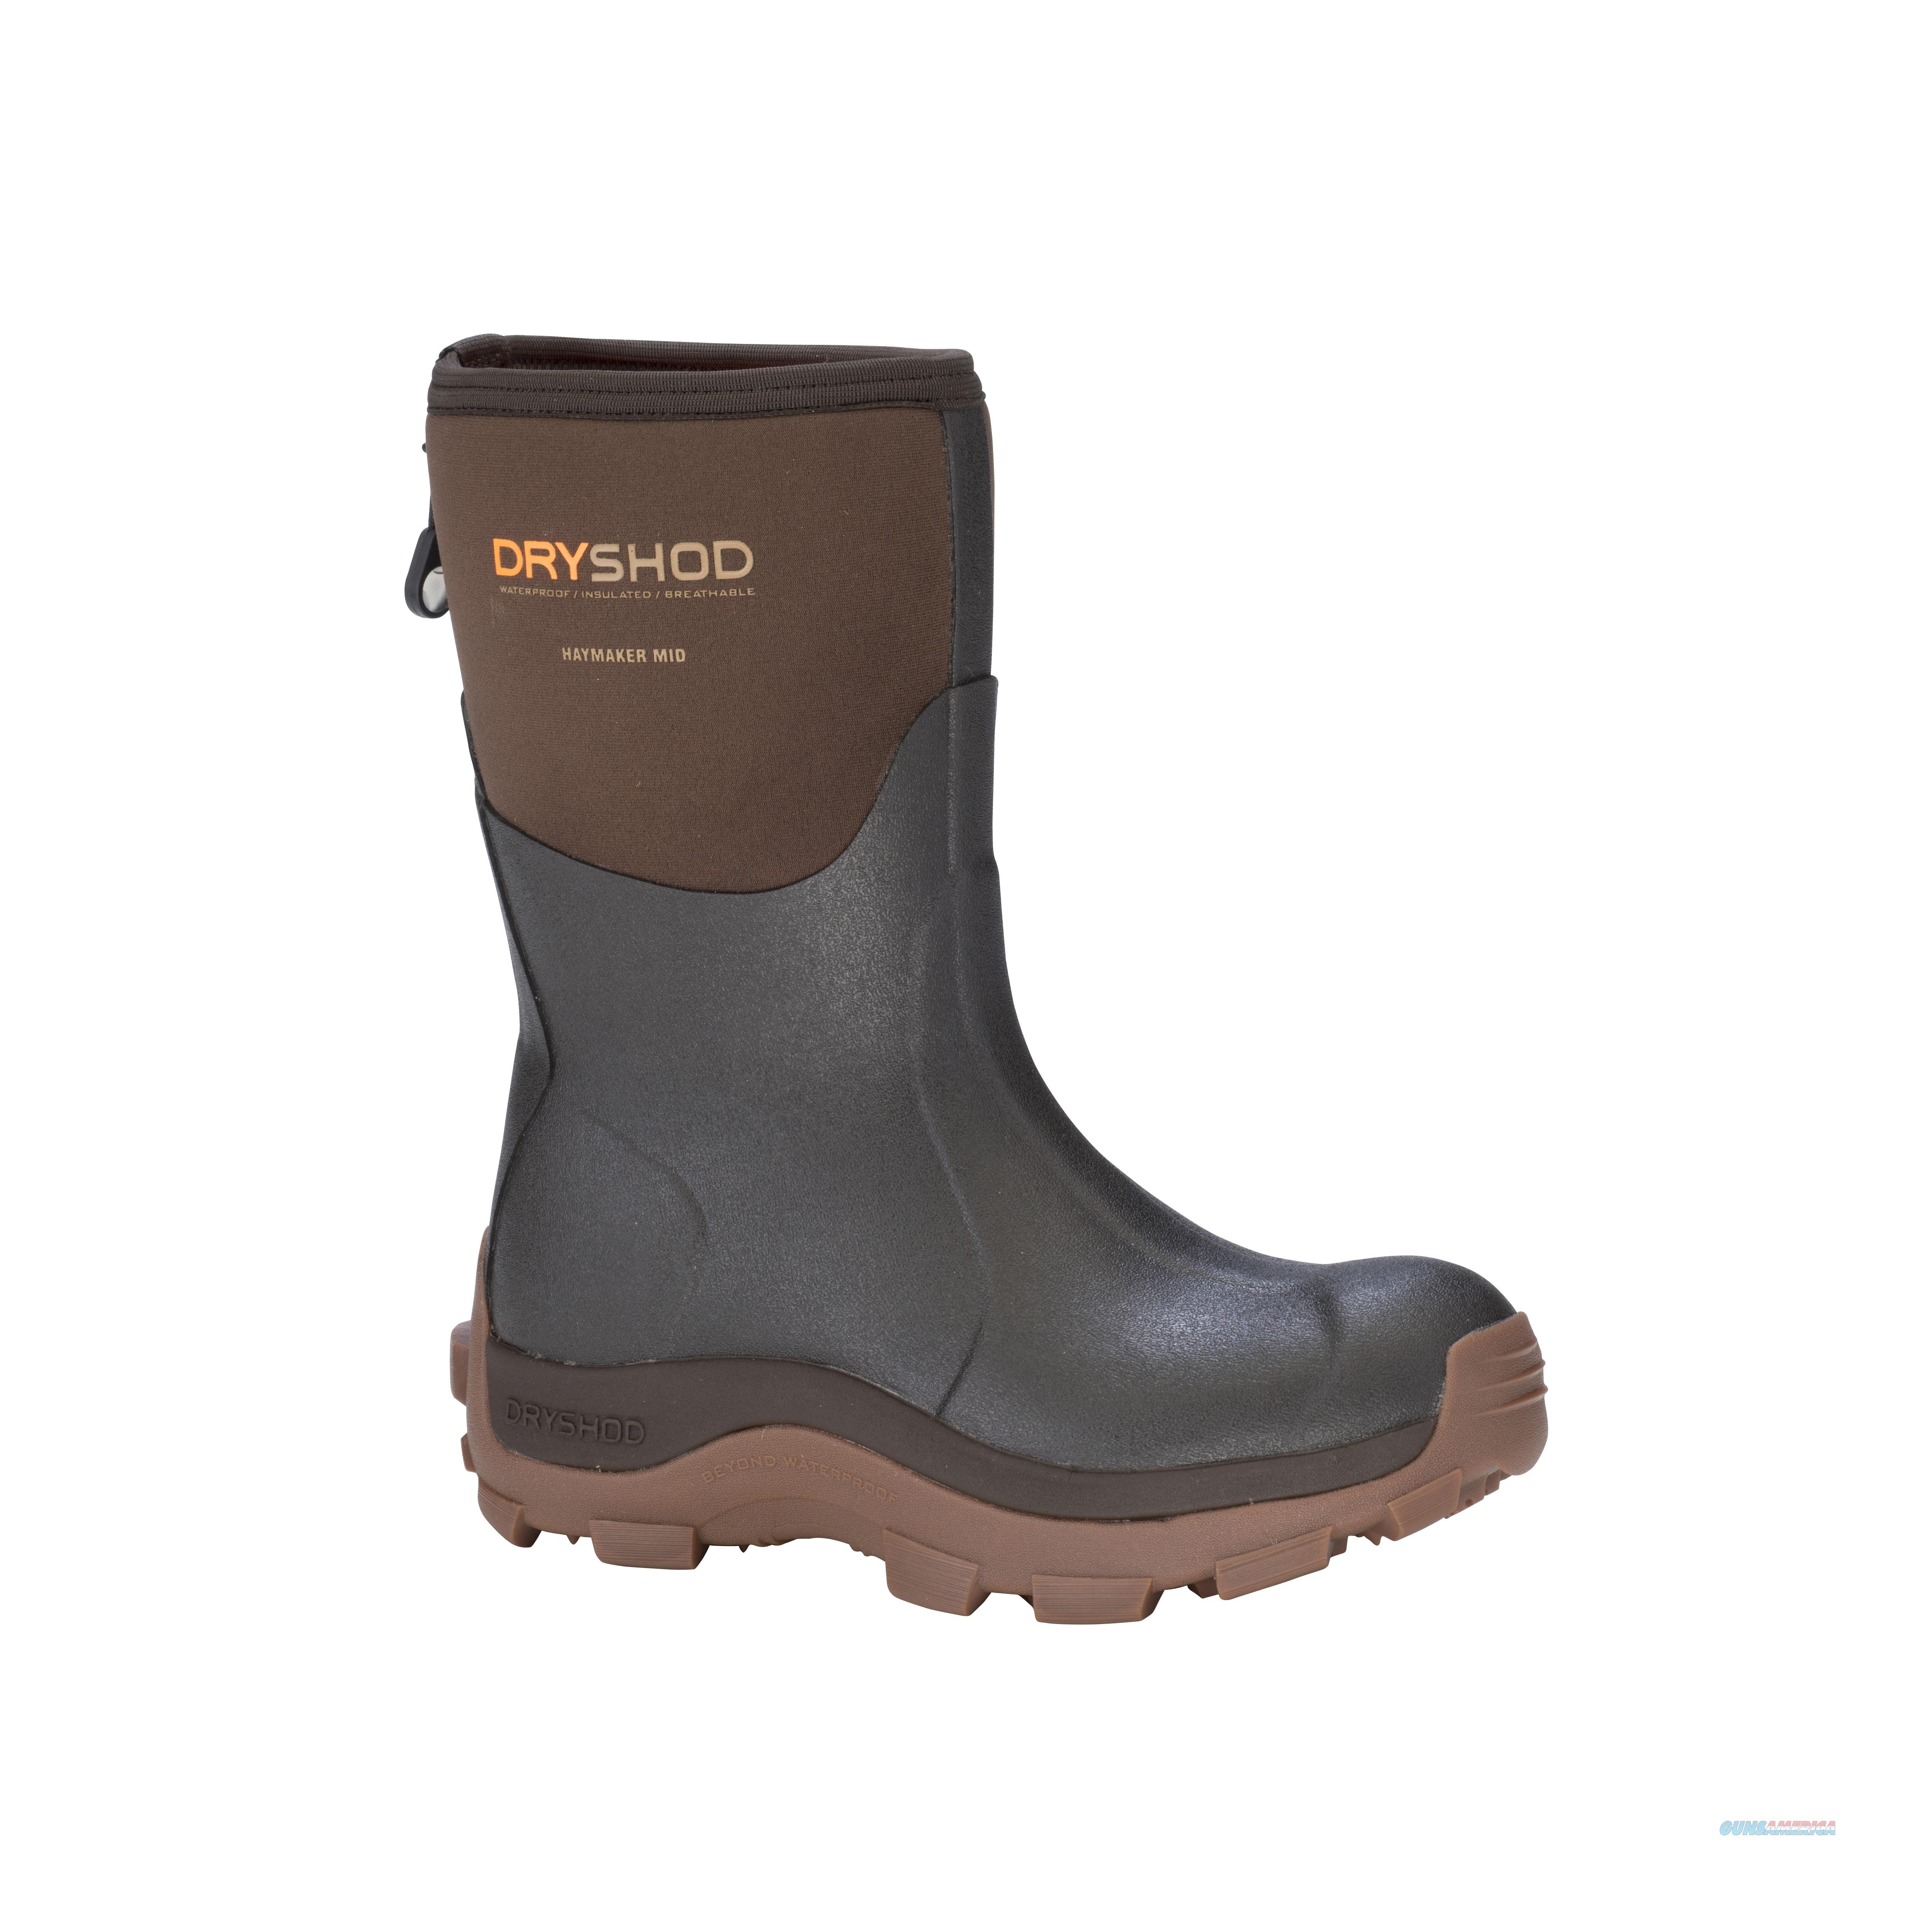 Dryshod Haymaker Mid Cut Boot Size 11  Non-Guns > Hunting Clothing and Equipment > Clothing > Camo Outerwear